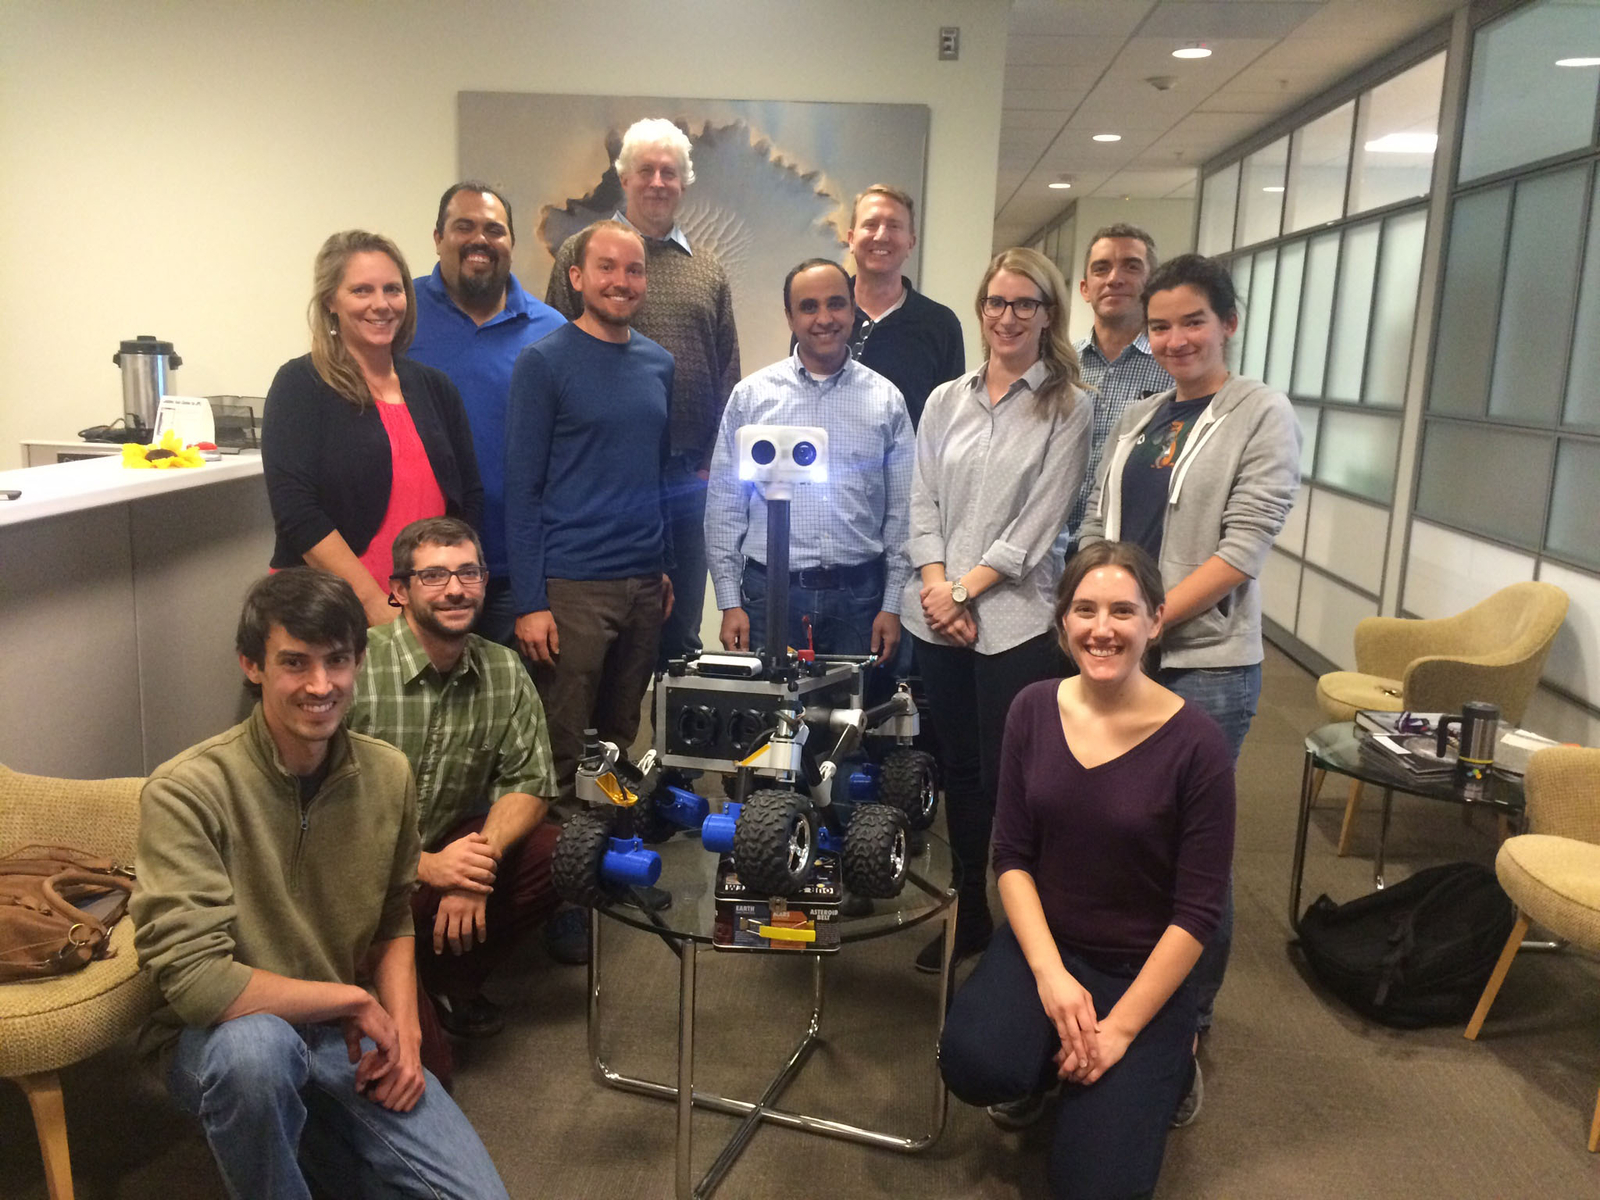 This is the team that built ROV-E with their mentors.